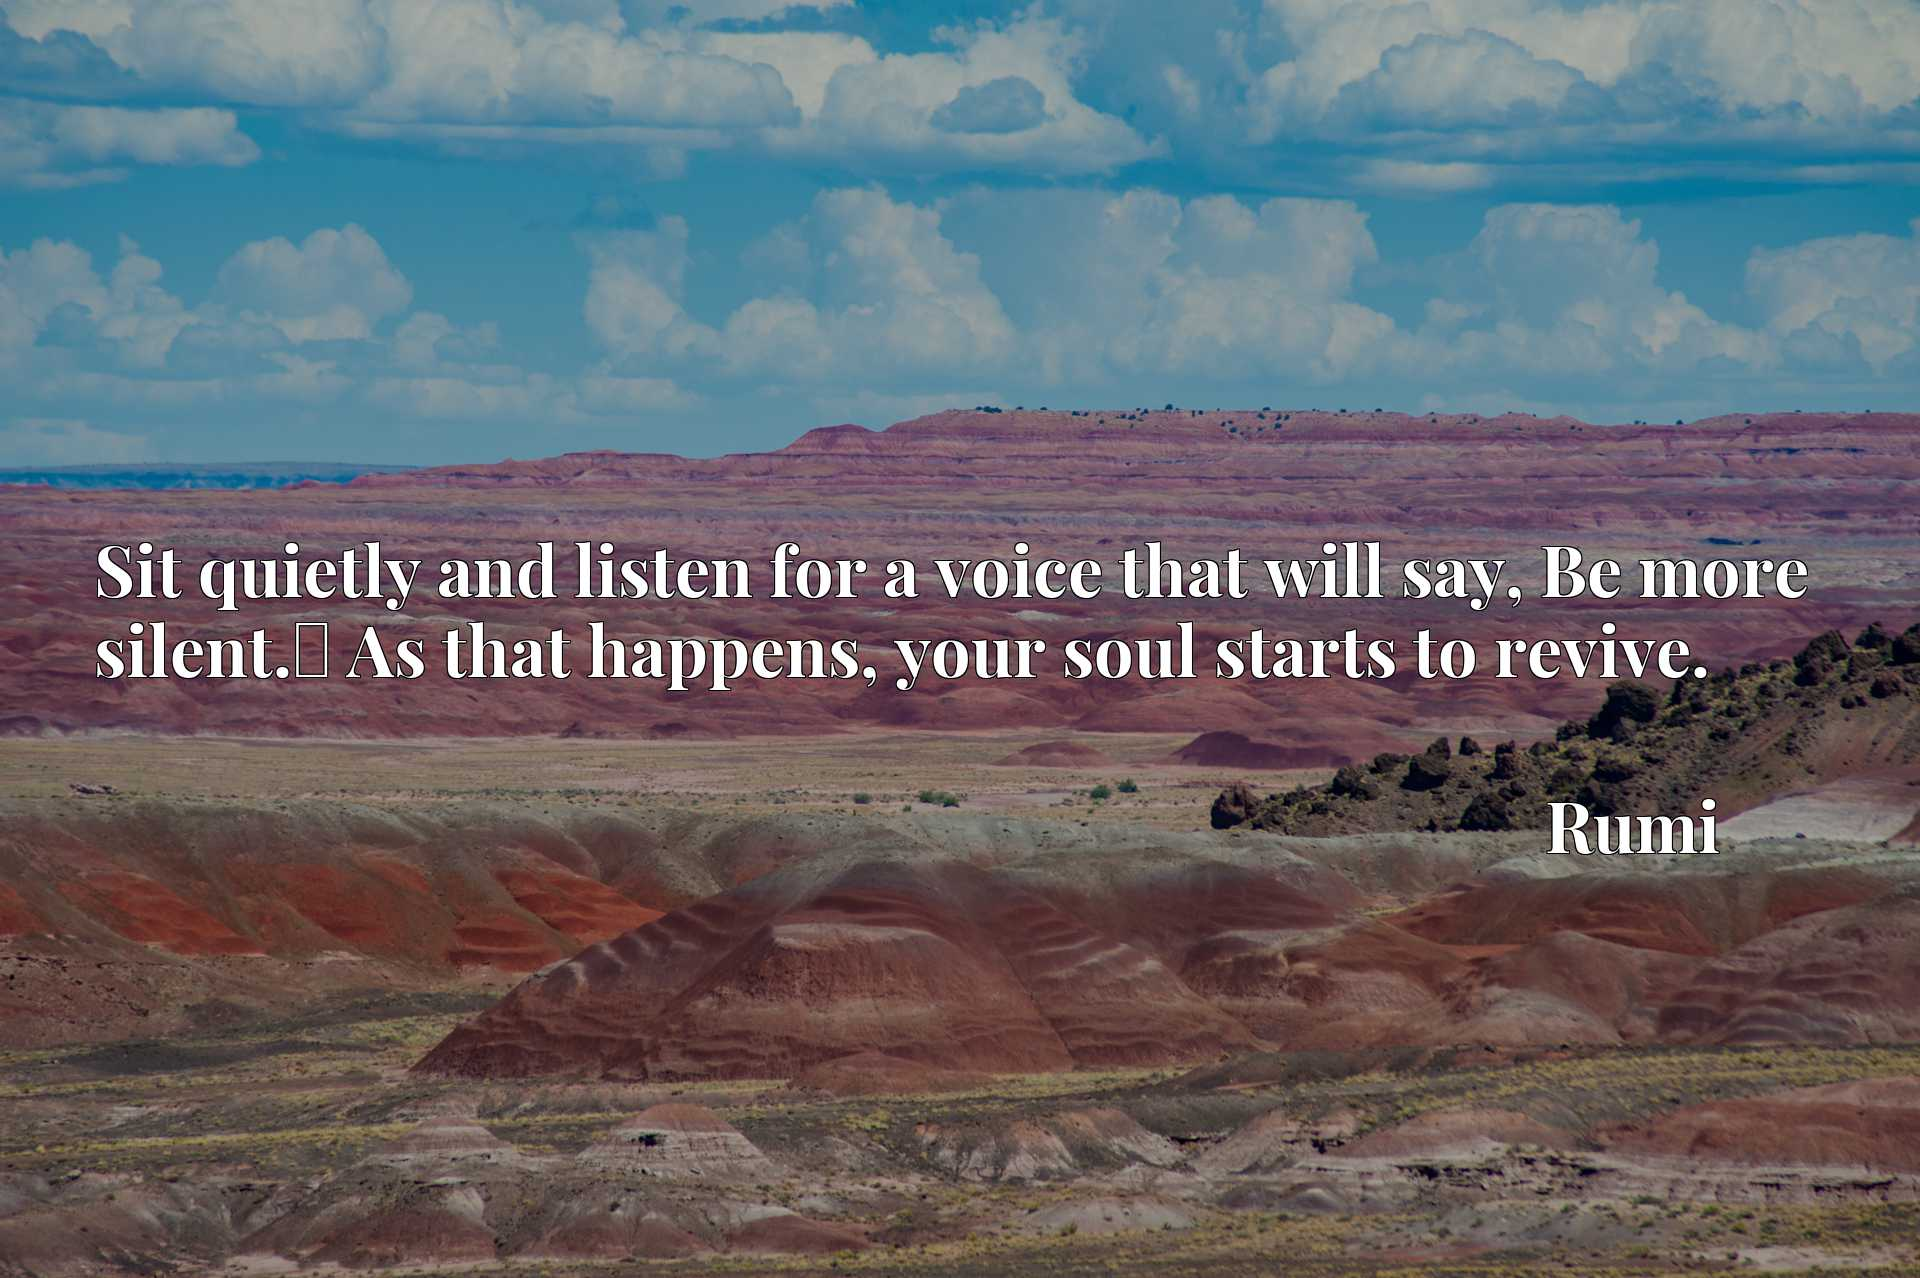 Sit quietly and listen for a voice that will say, Be more silent.x9d As that happens, your soul starts to revive.